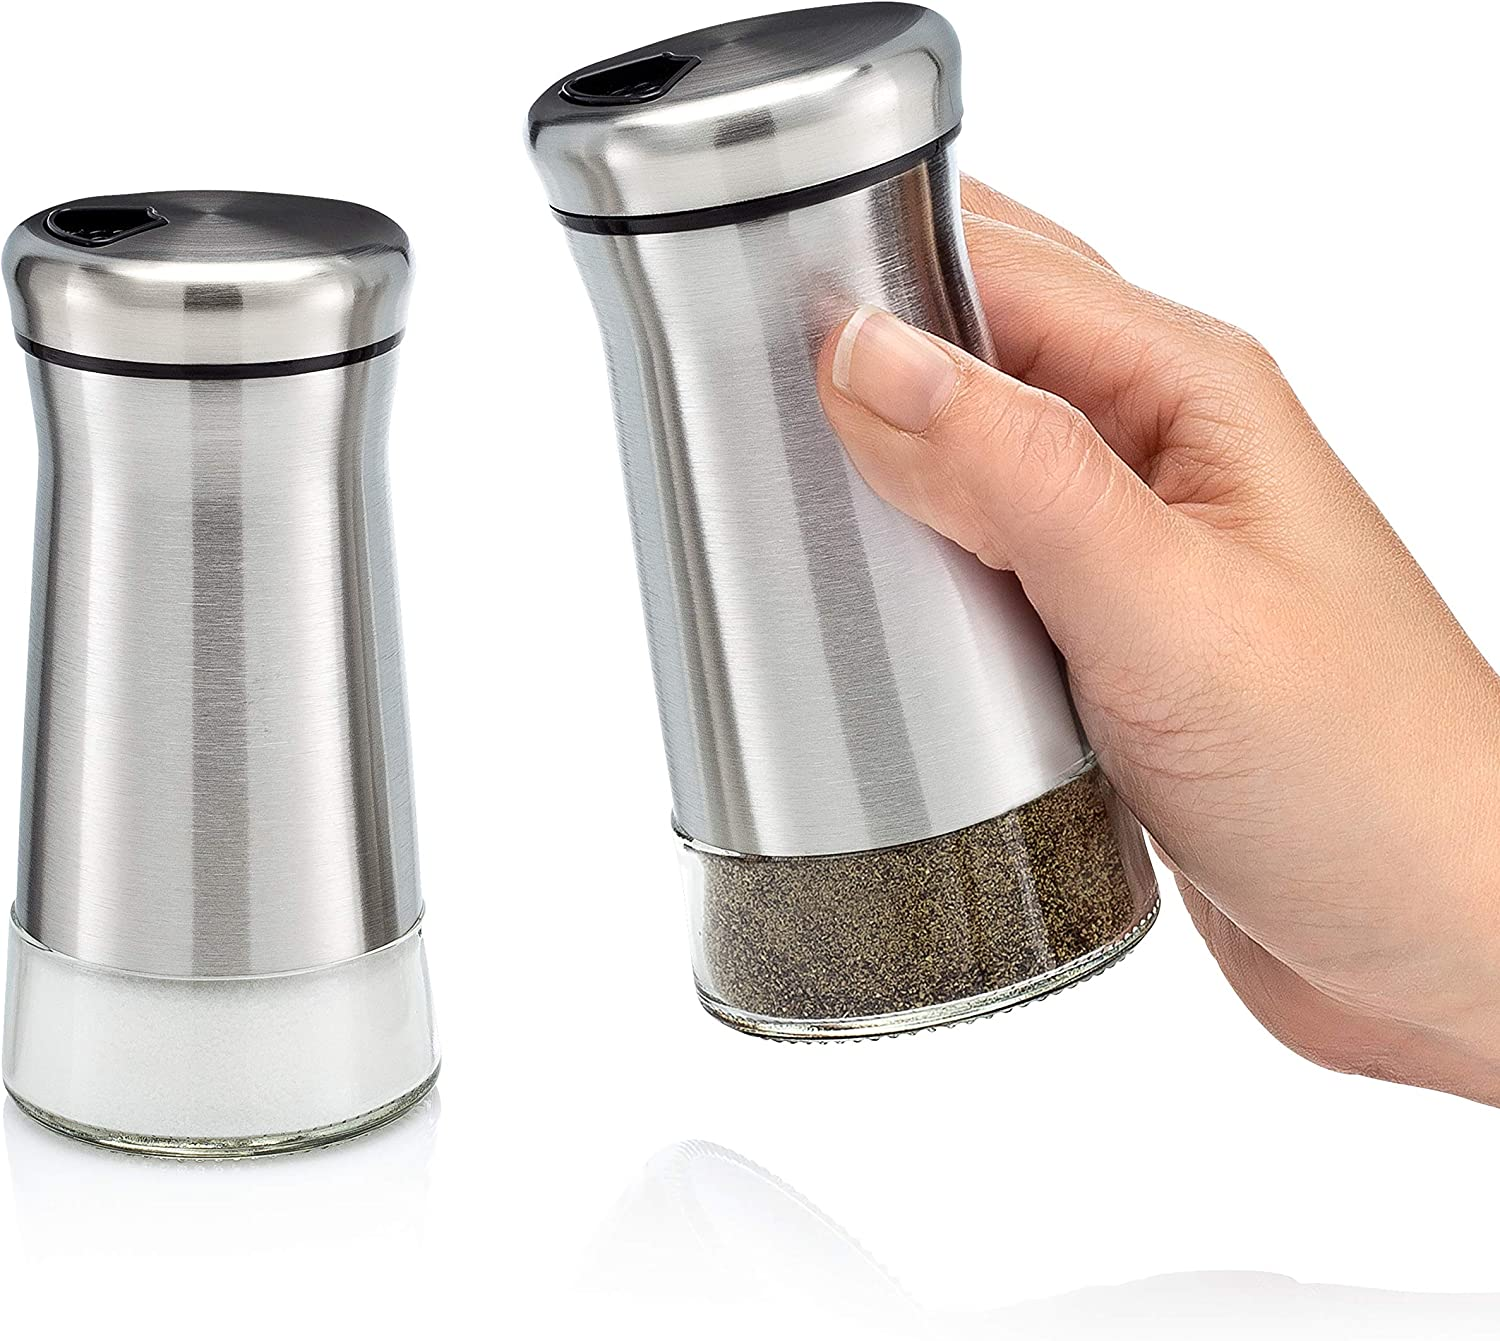 Premium Salt and Pepper Shakers with Adjustable Pour Holes - Elegant Stainless Steel Salt and Pepper Dispenser - Perfect for Himalayan, Kosher and Sea Salts - Spices W/Collapsible Funnel/Ebook